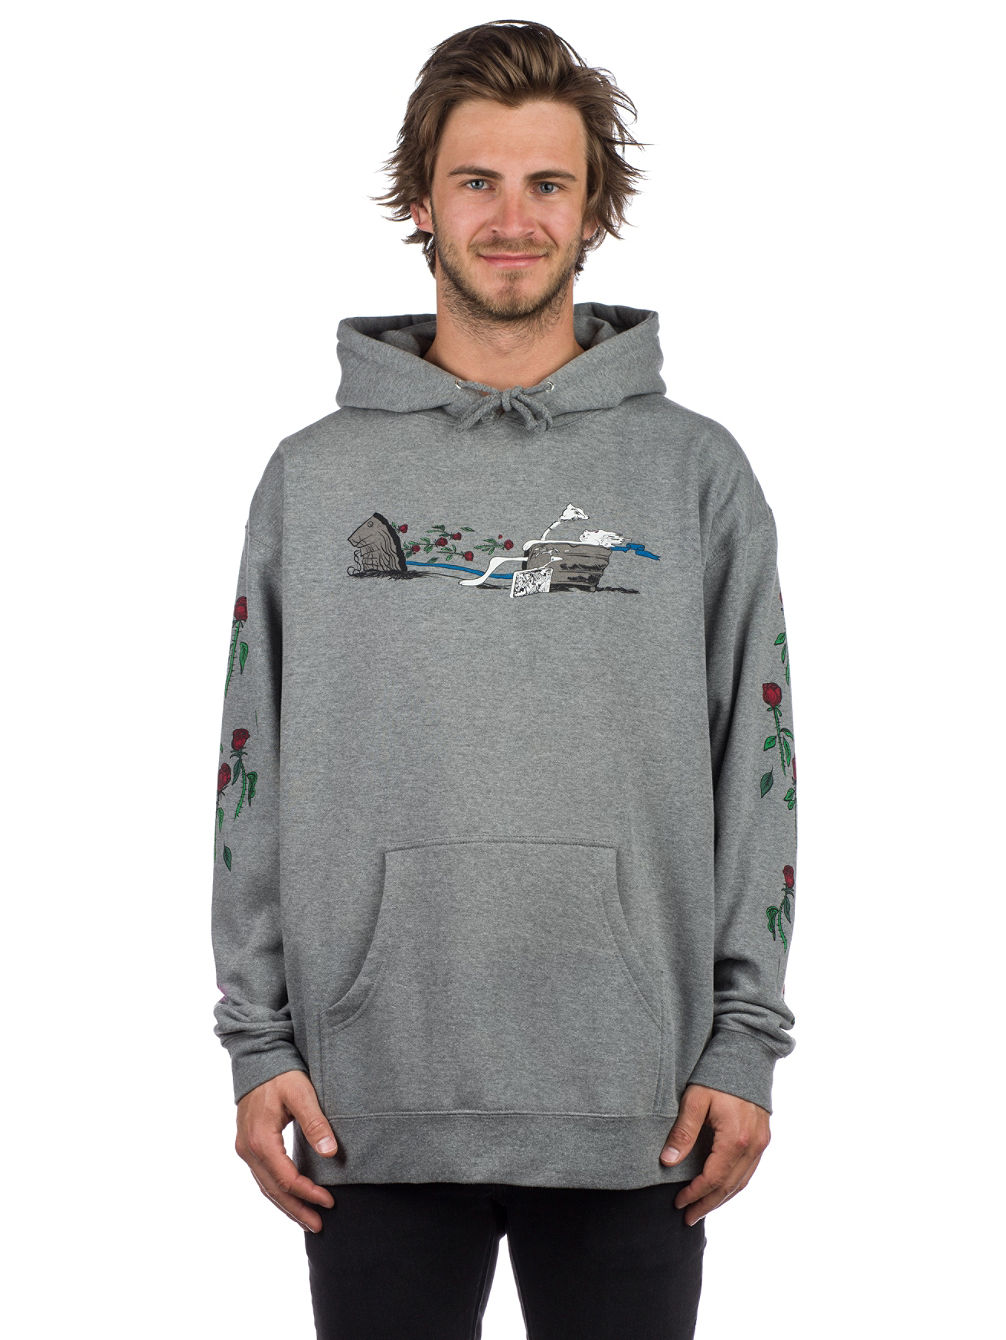 Maxnerm Pullover Hoodie